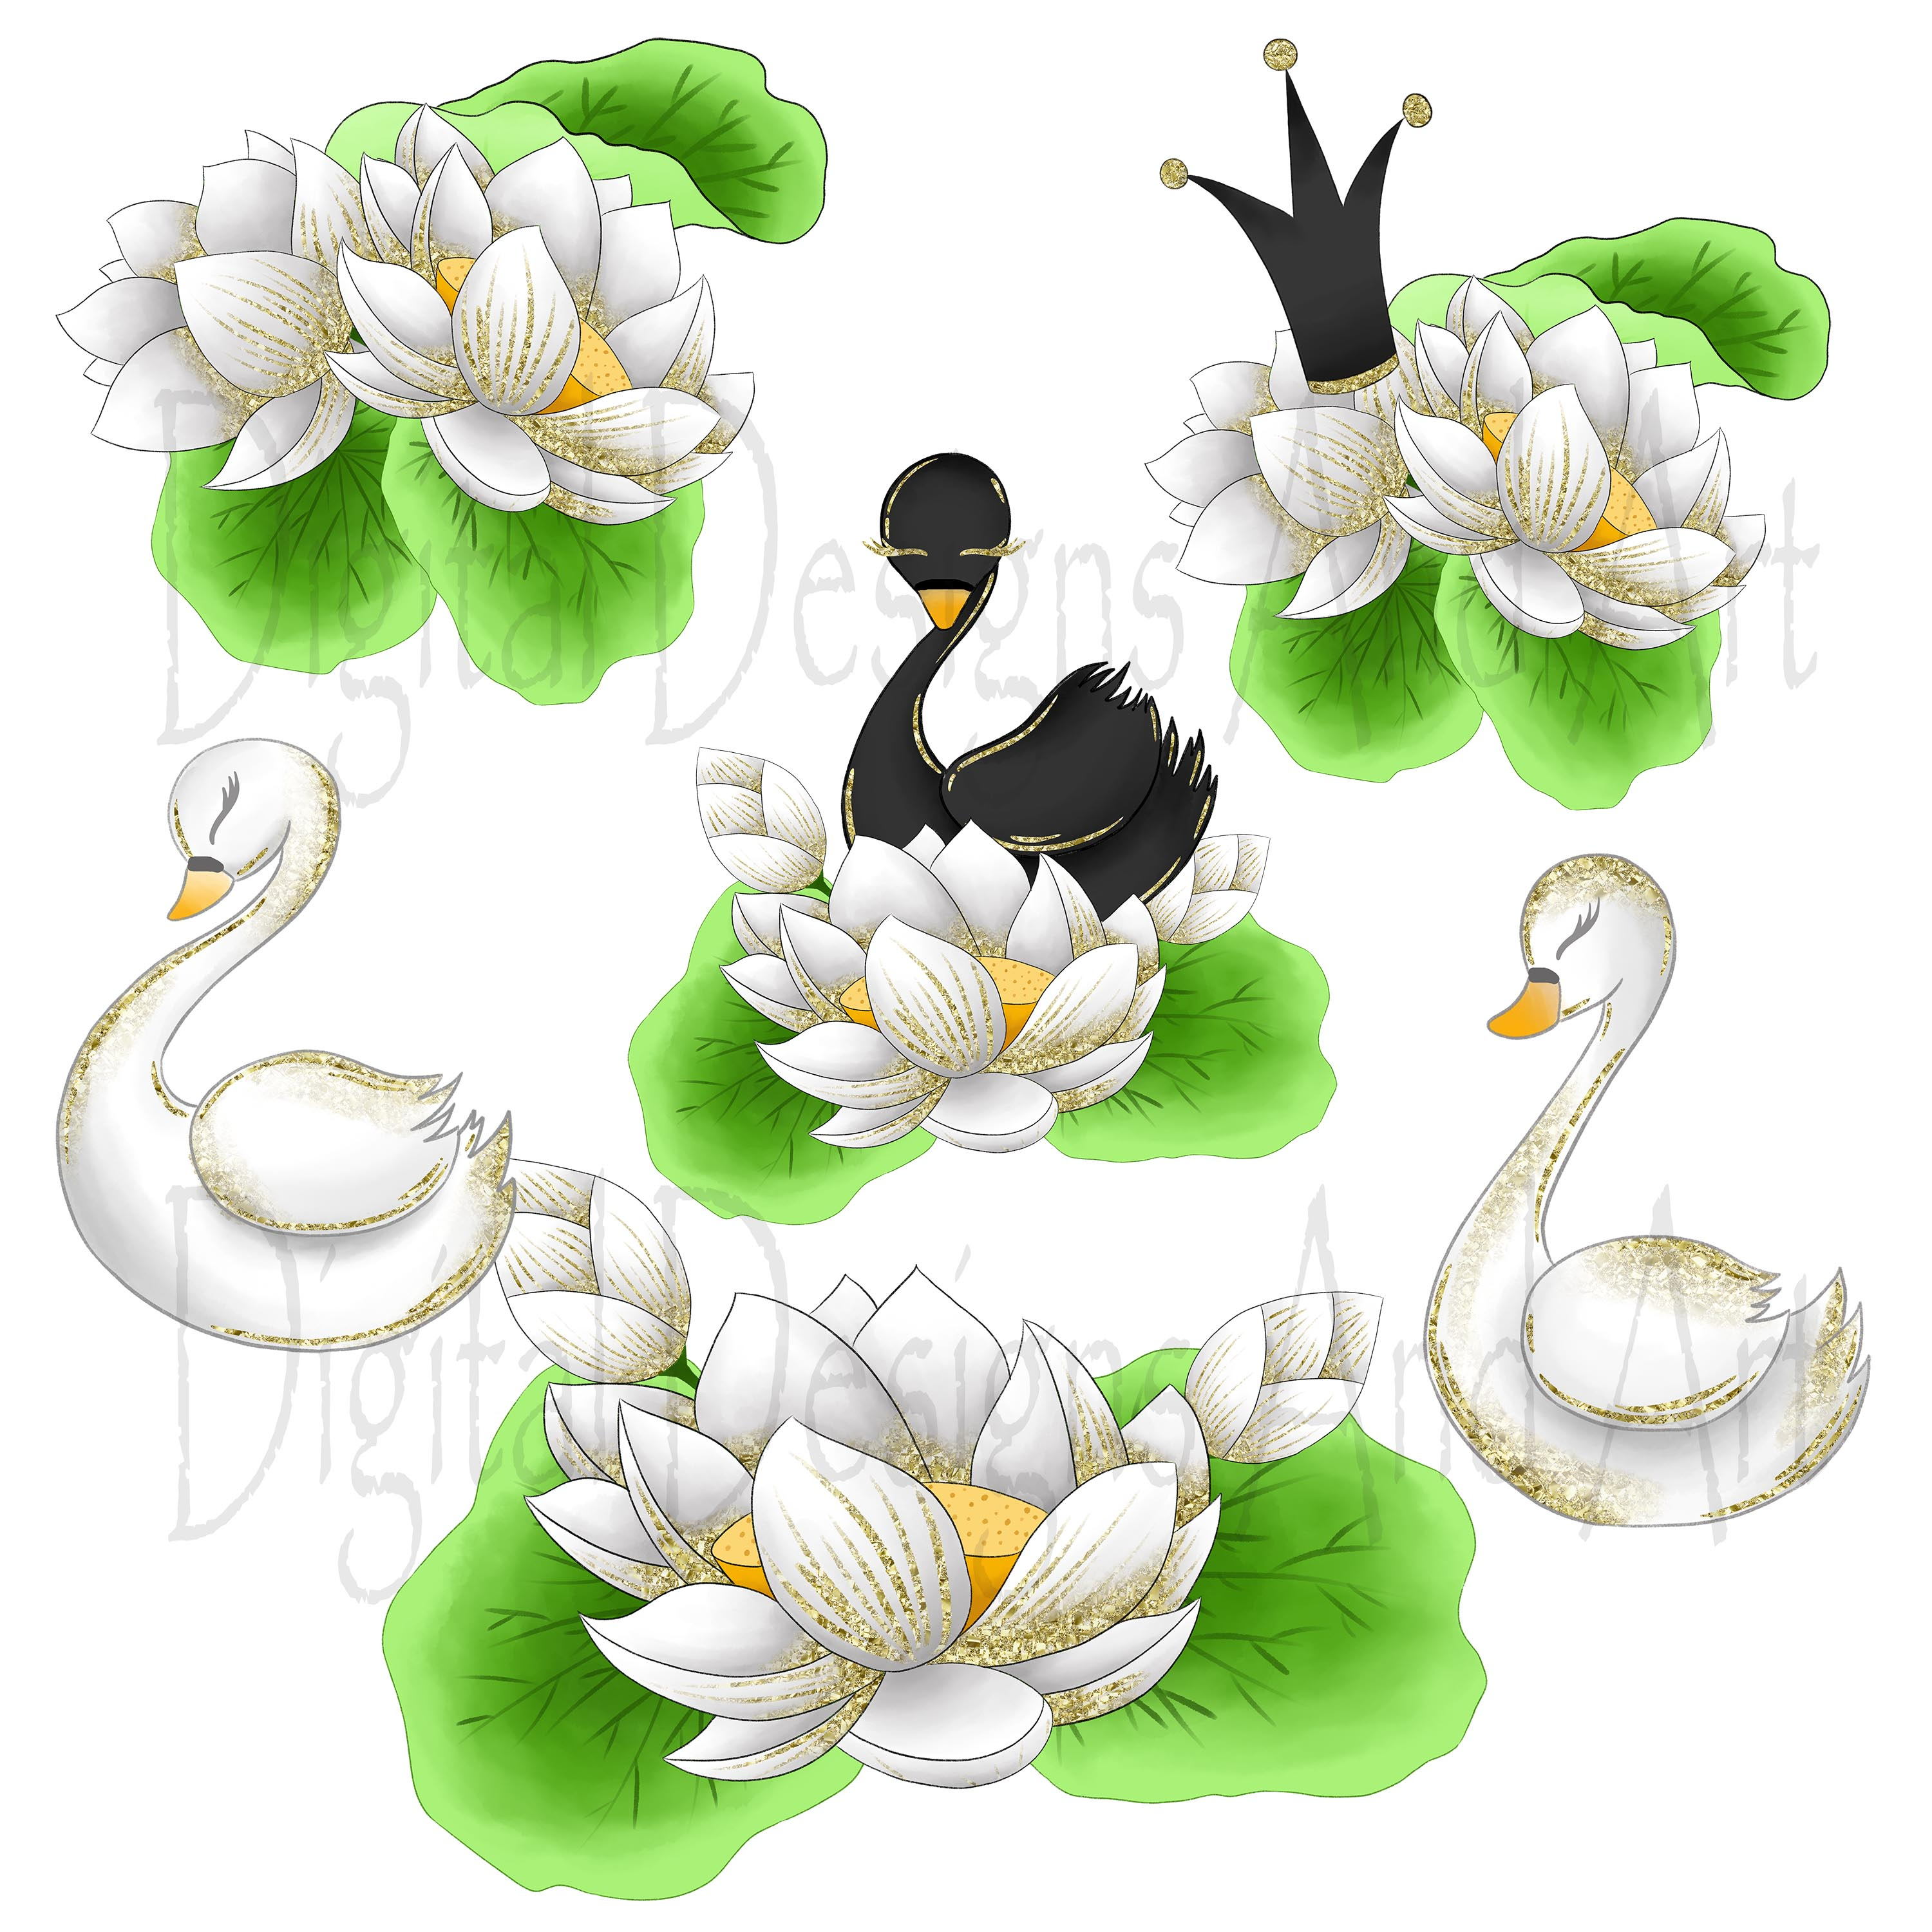 Wild swans clipart example image 3